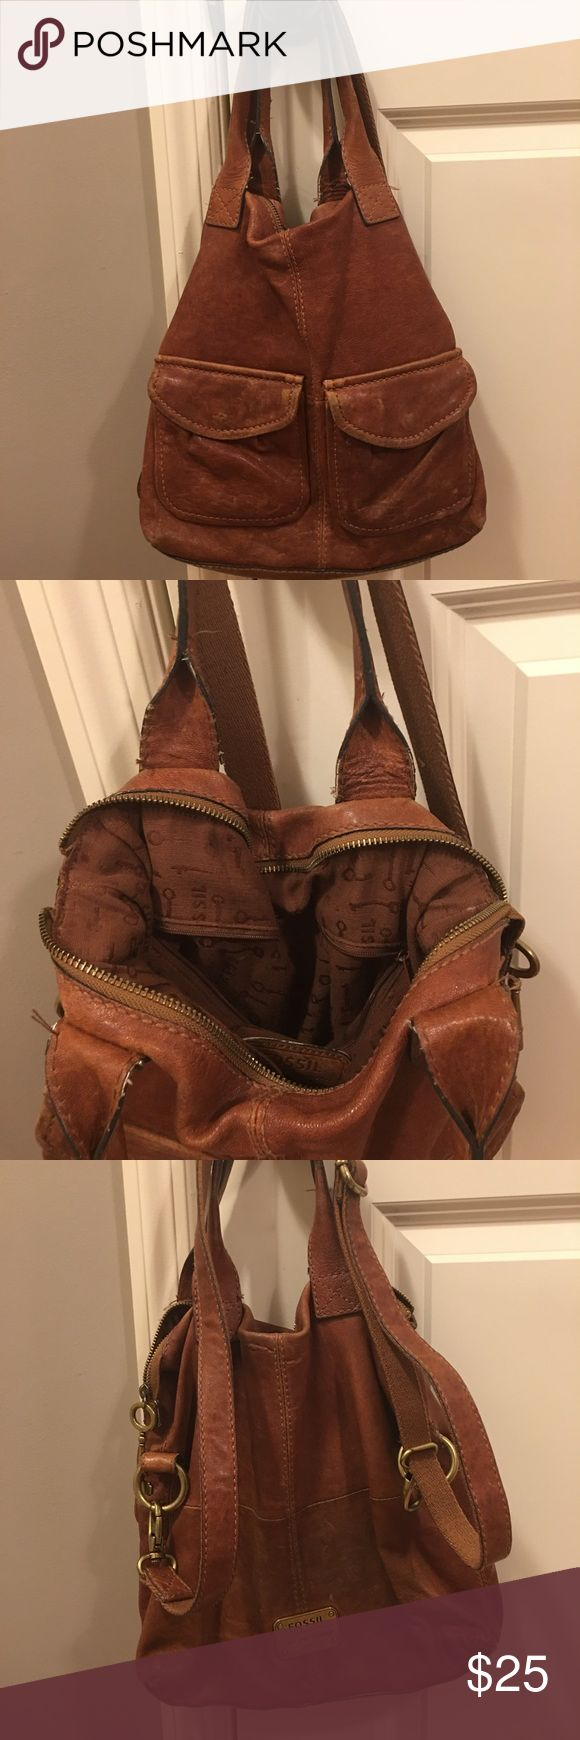 Fossil Bag A well loved, but still has life Fossil Bag. Drape cross body or over your shoulder. A darker camel brown in color. Goes with many outfits. Fossil Bags